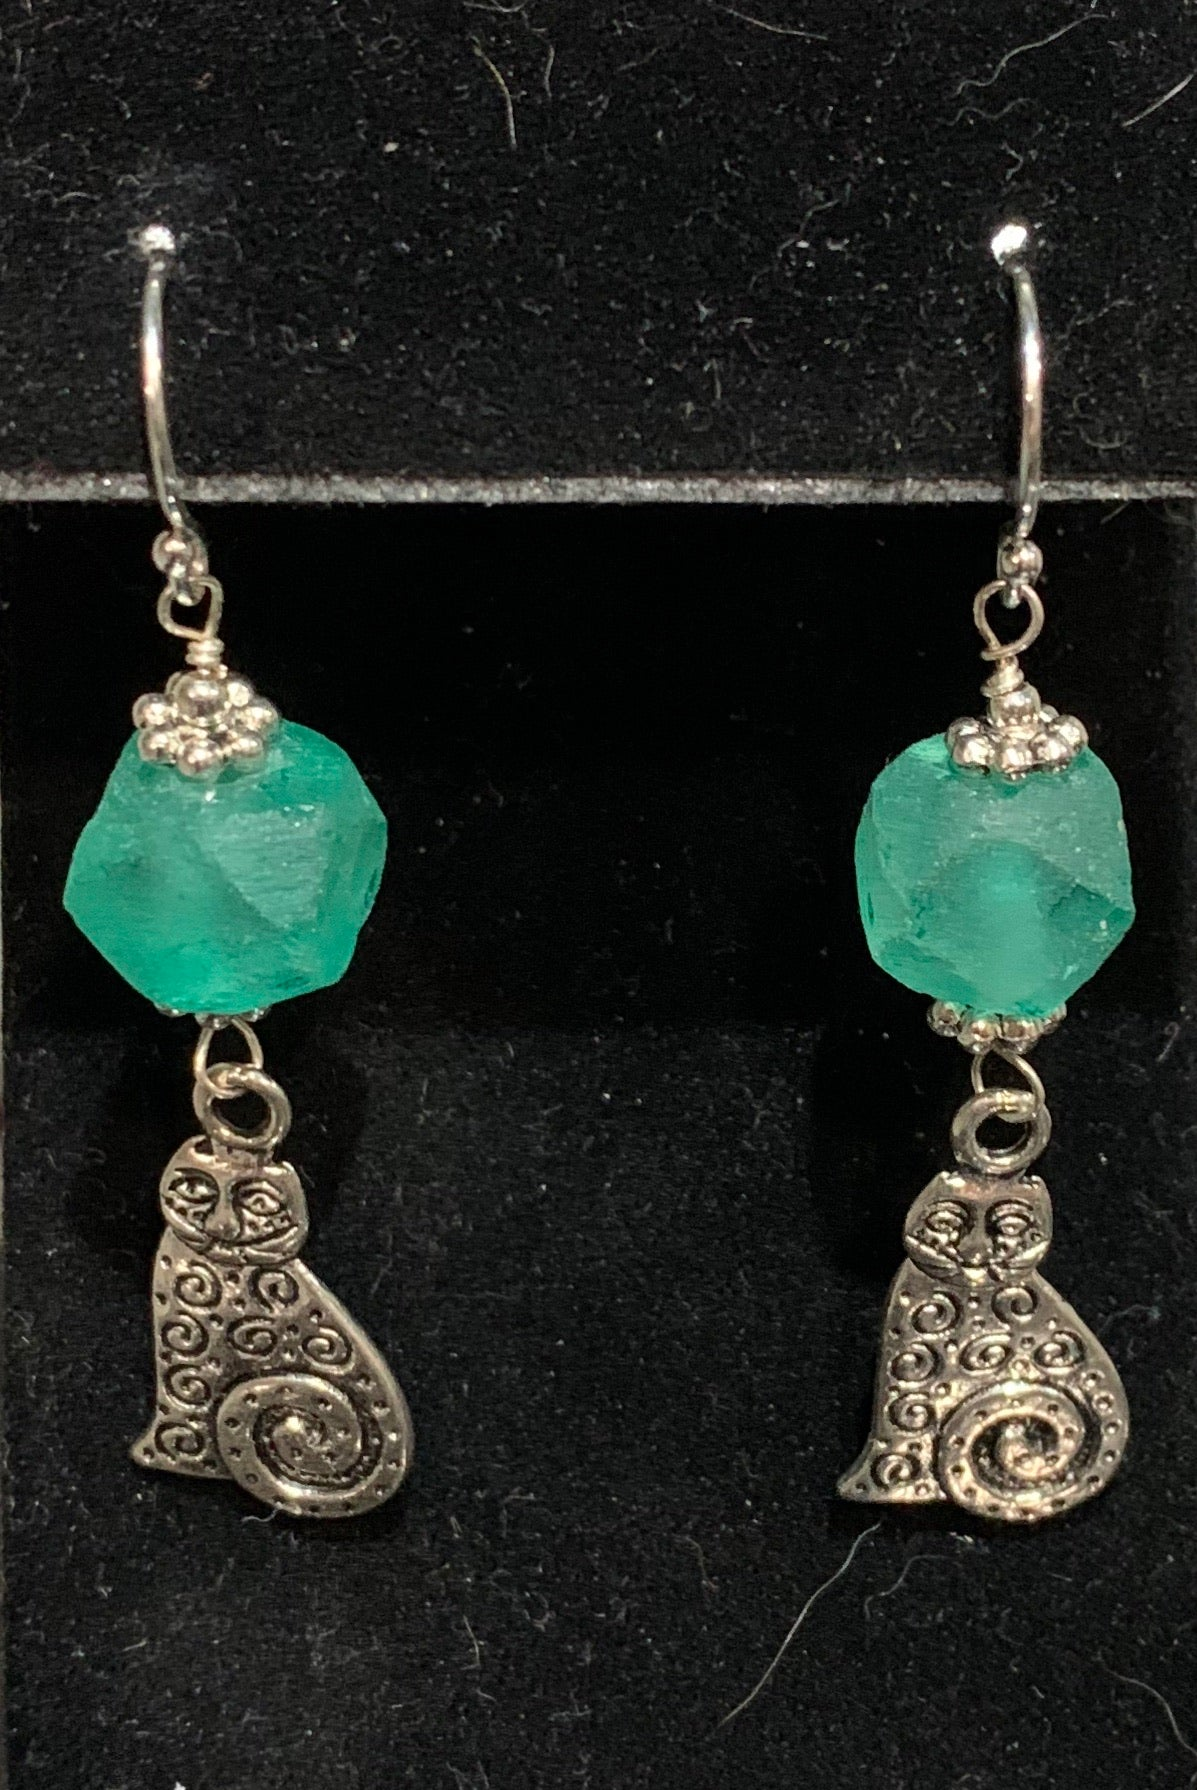 SS, Bali Glass with Pewter Cats Earrings by Jules Heerlein